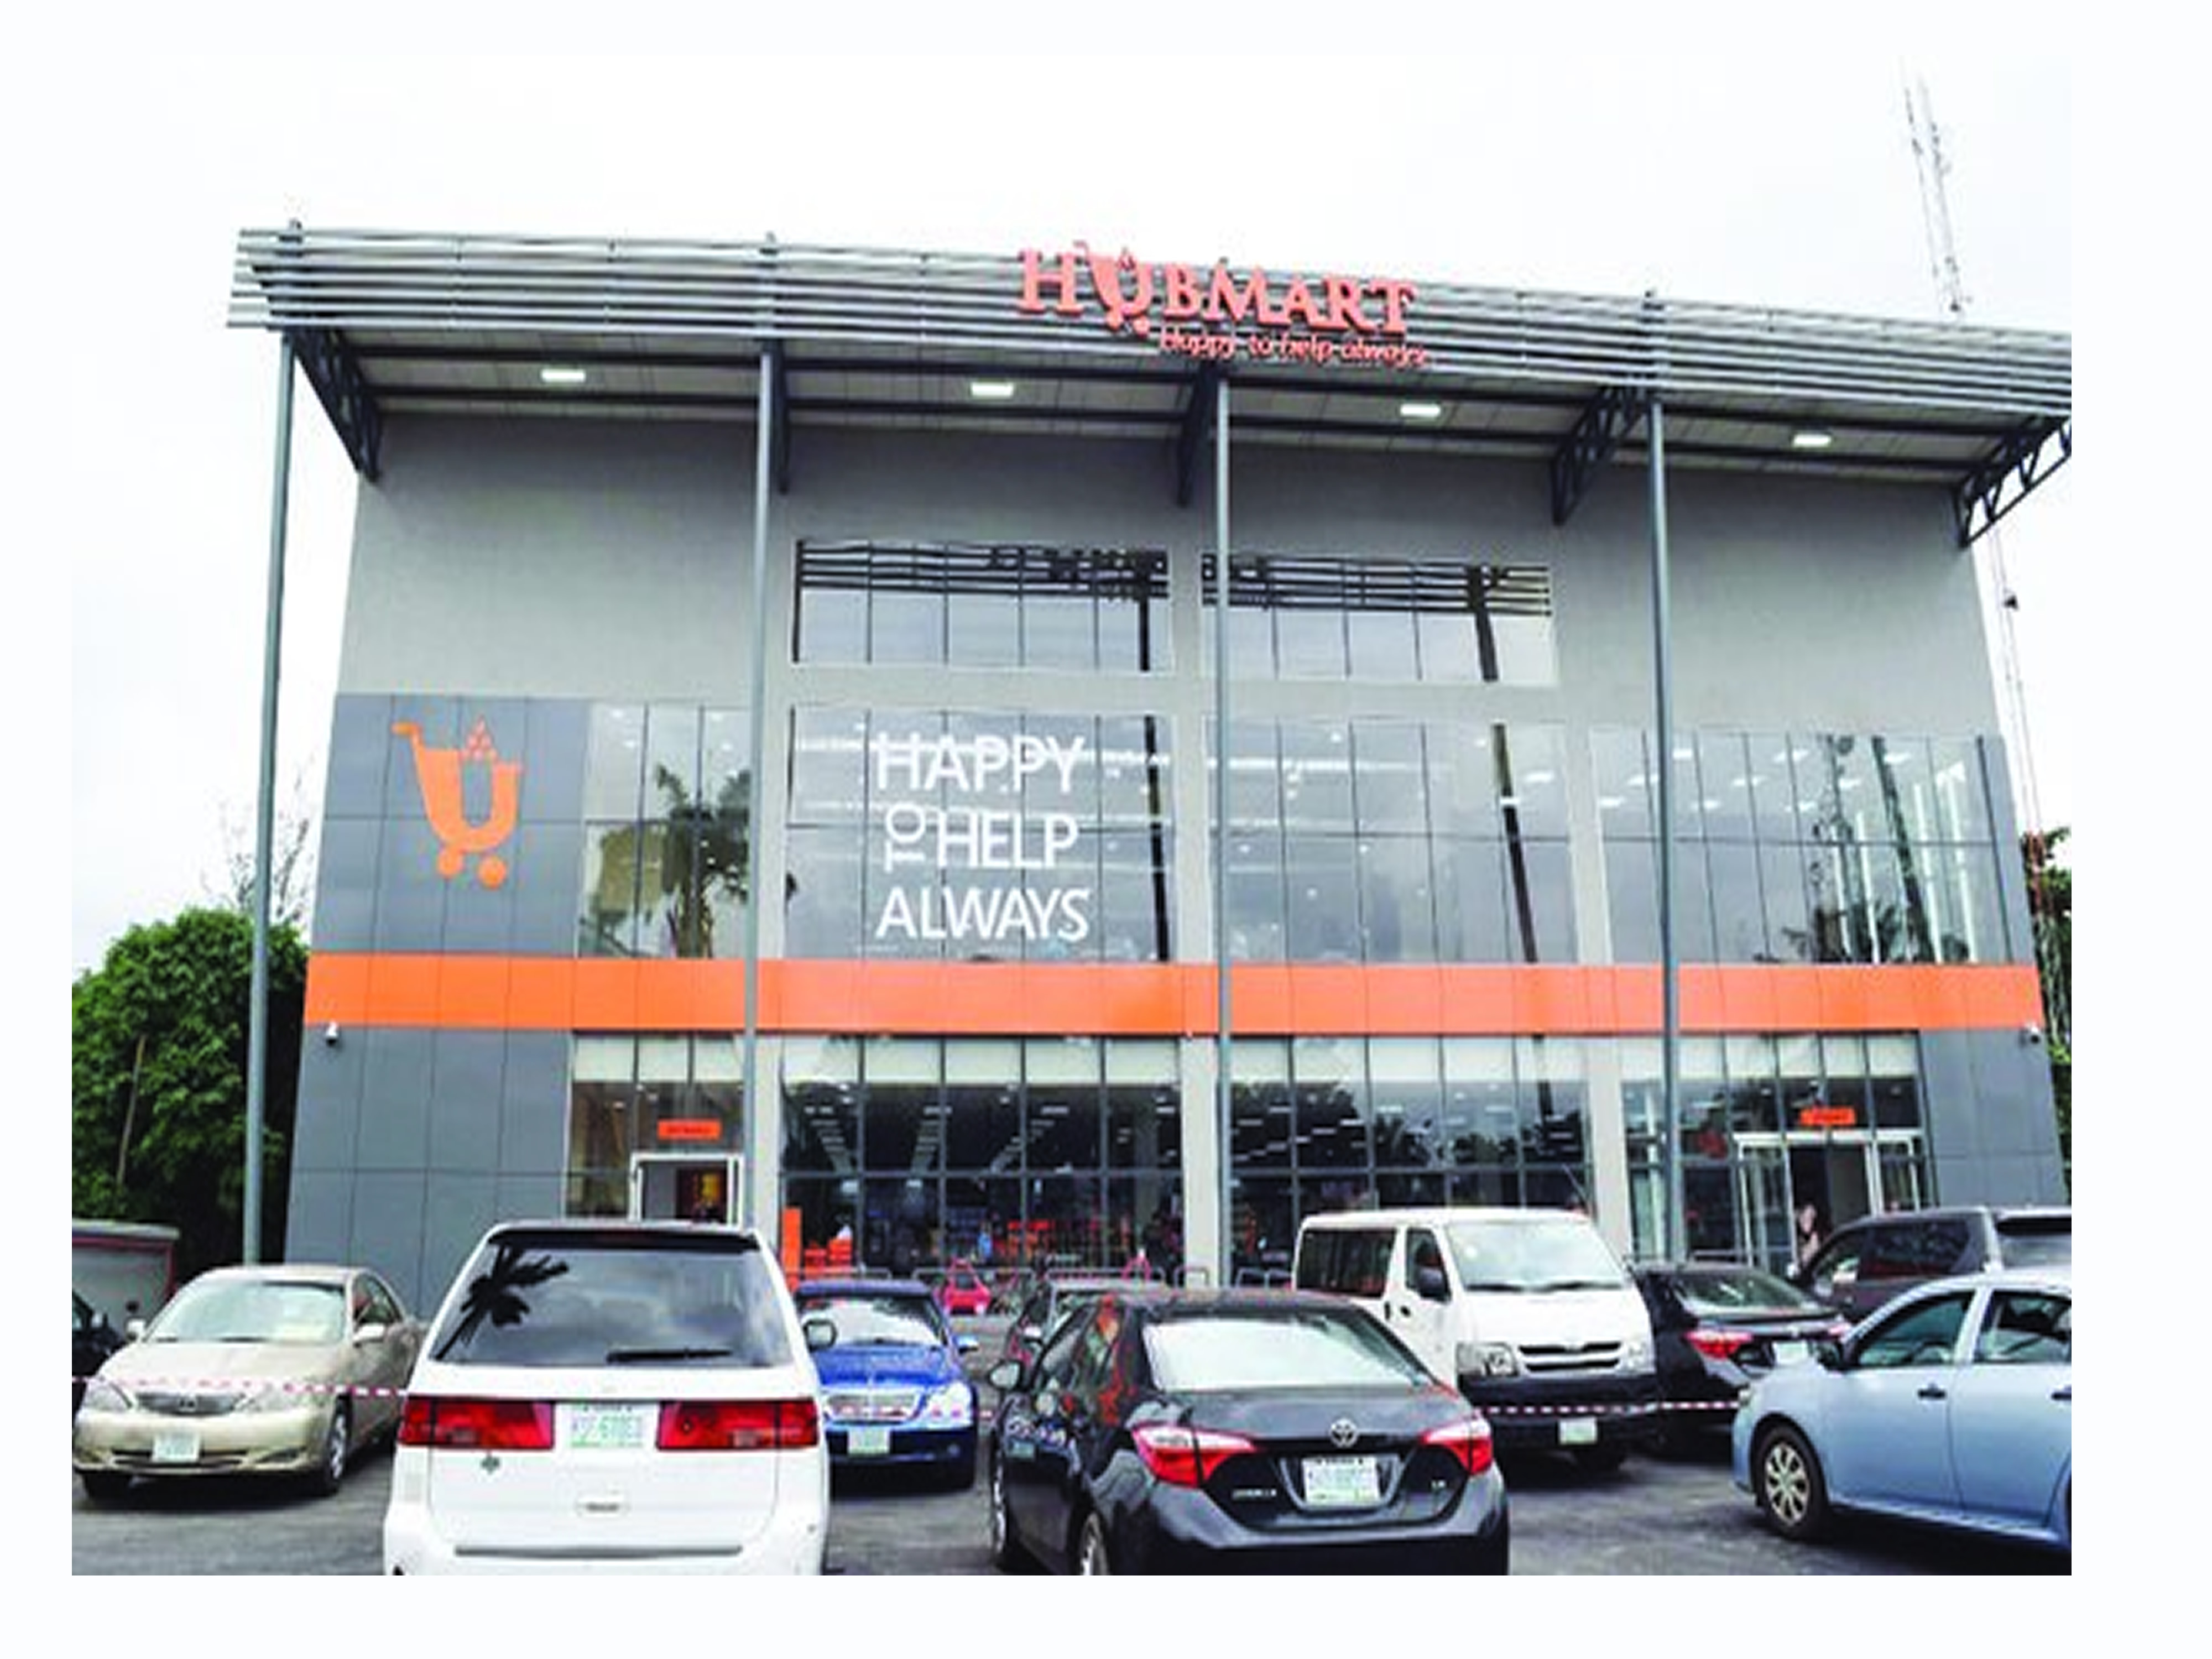 The Nigeria Retail Industry in Another Giant Move